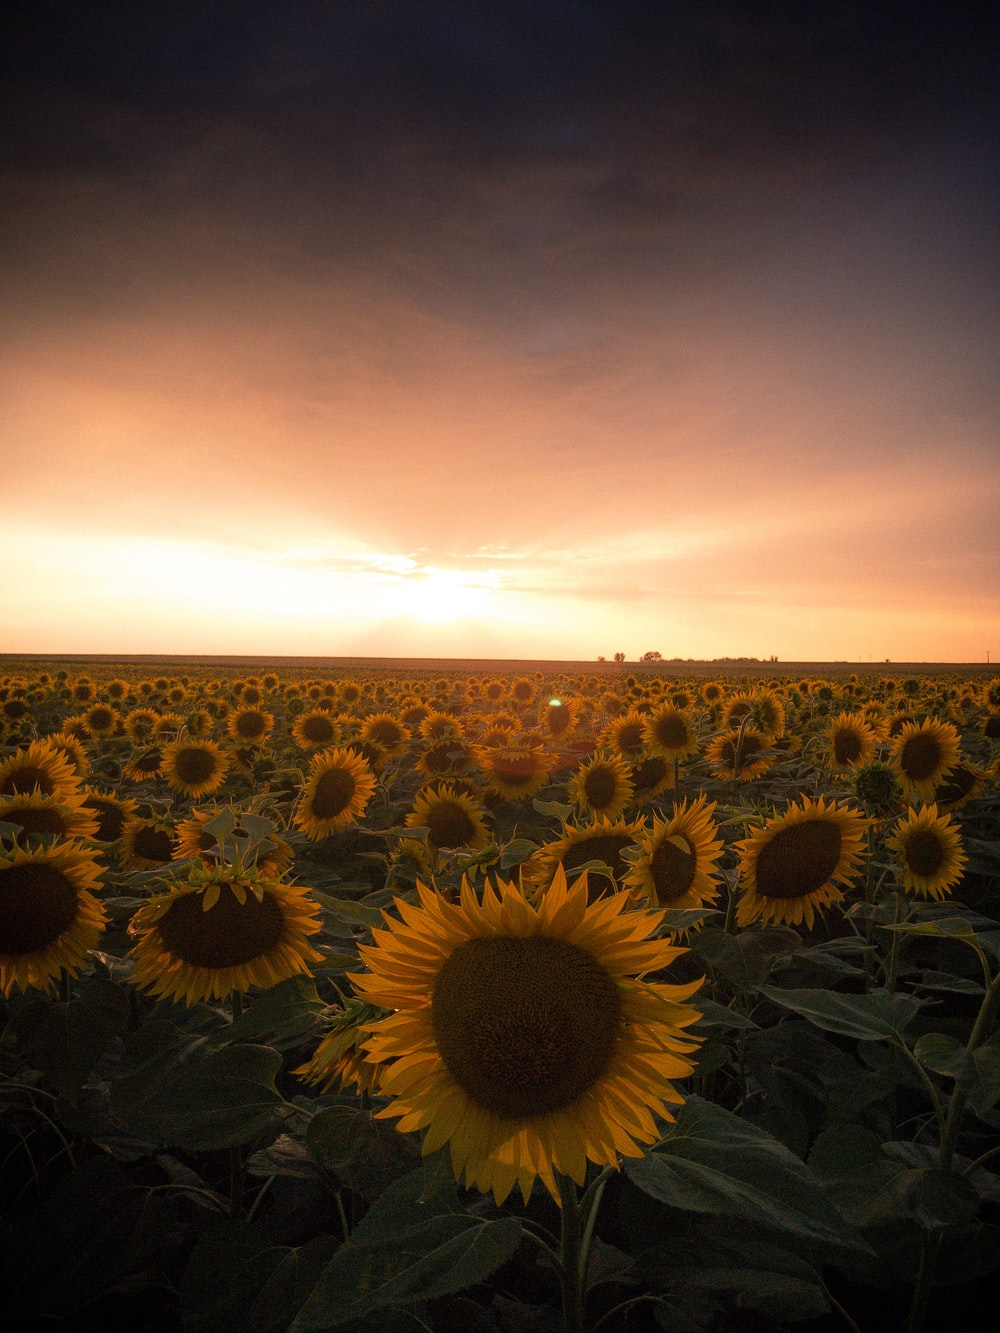 sunflower field under orange sky